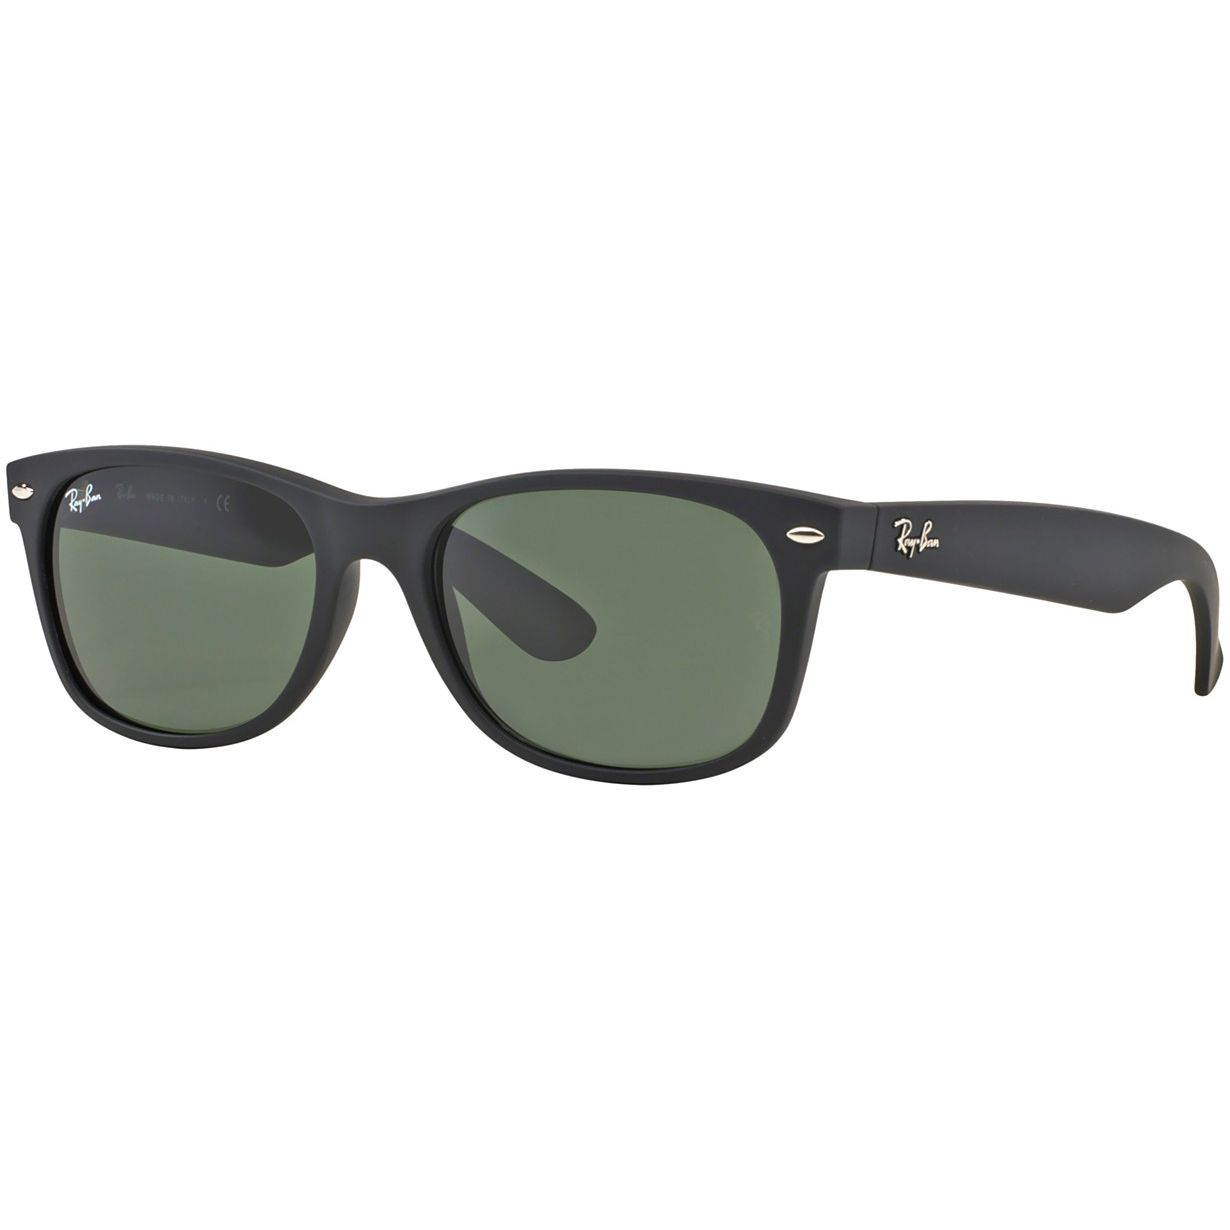 7be2b72abec4 Best for Men: Ray-Ban New Wayfarer Polarized Sunglasses